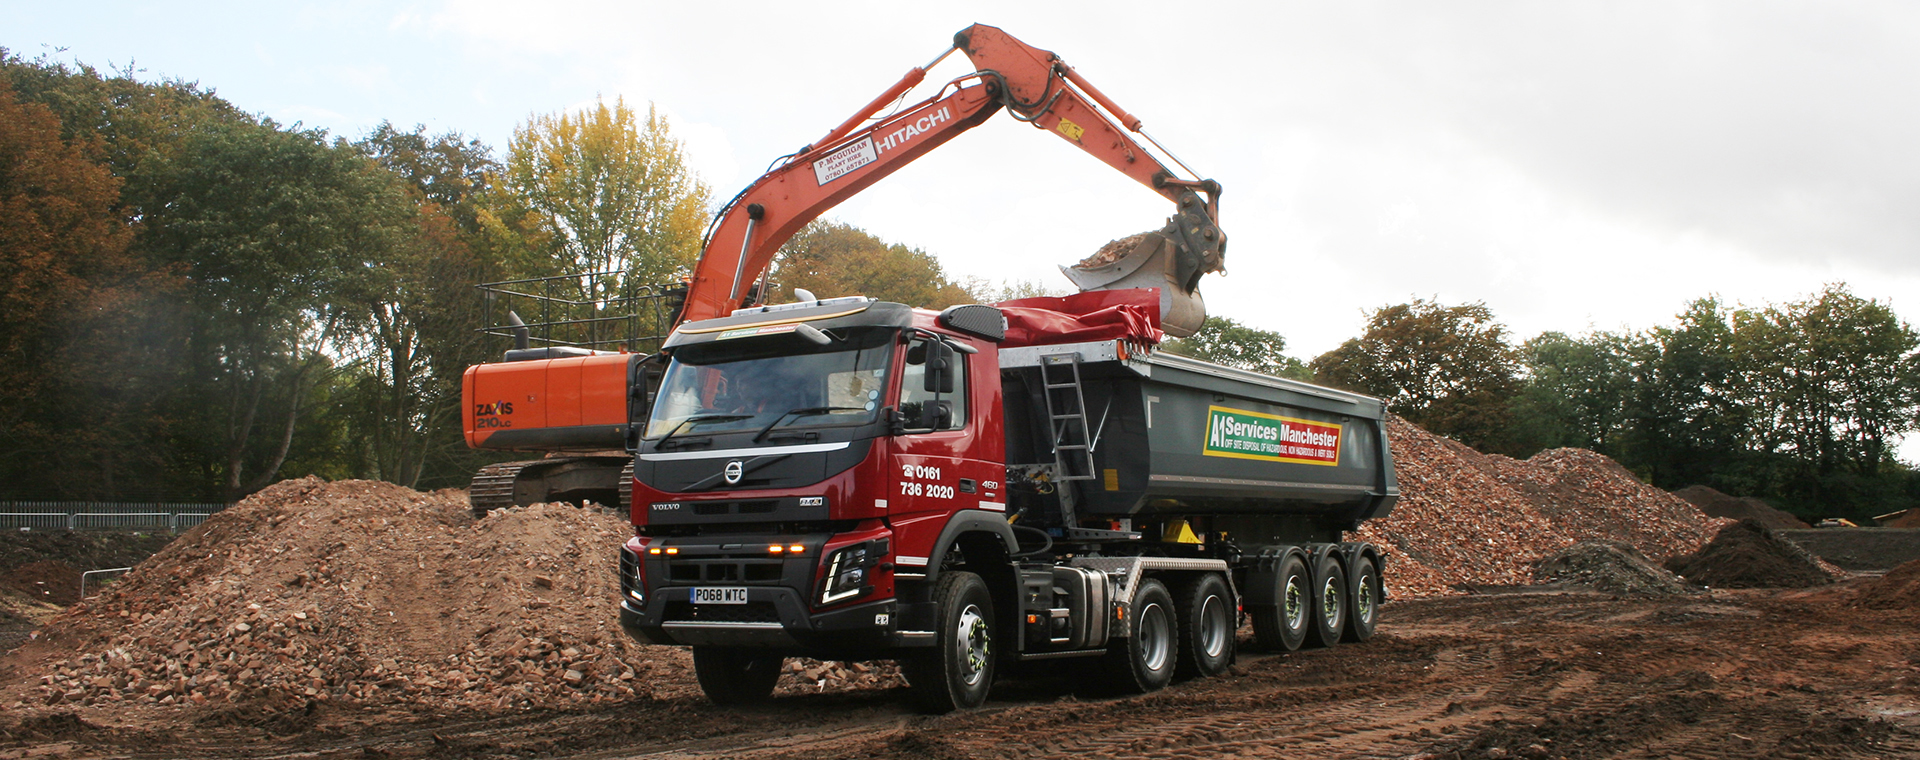 Articulated tipper being loaded at demolition site